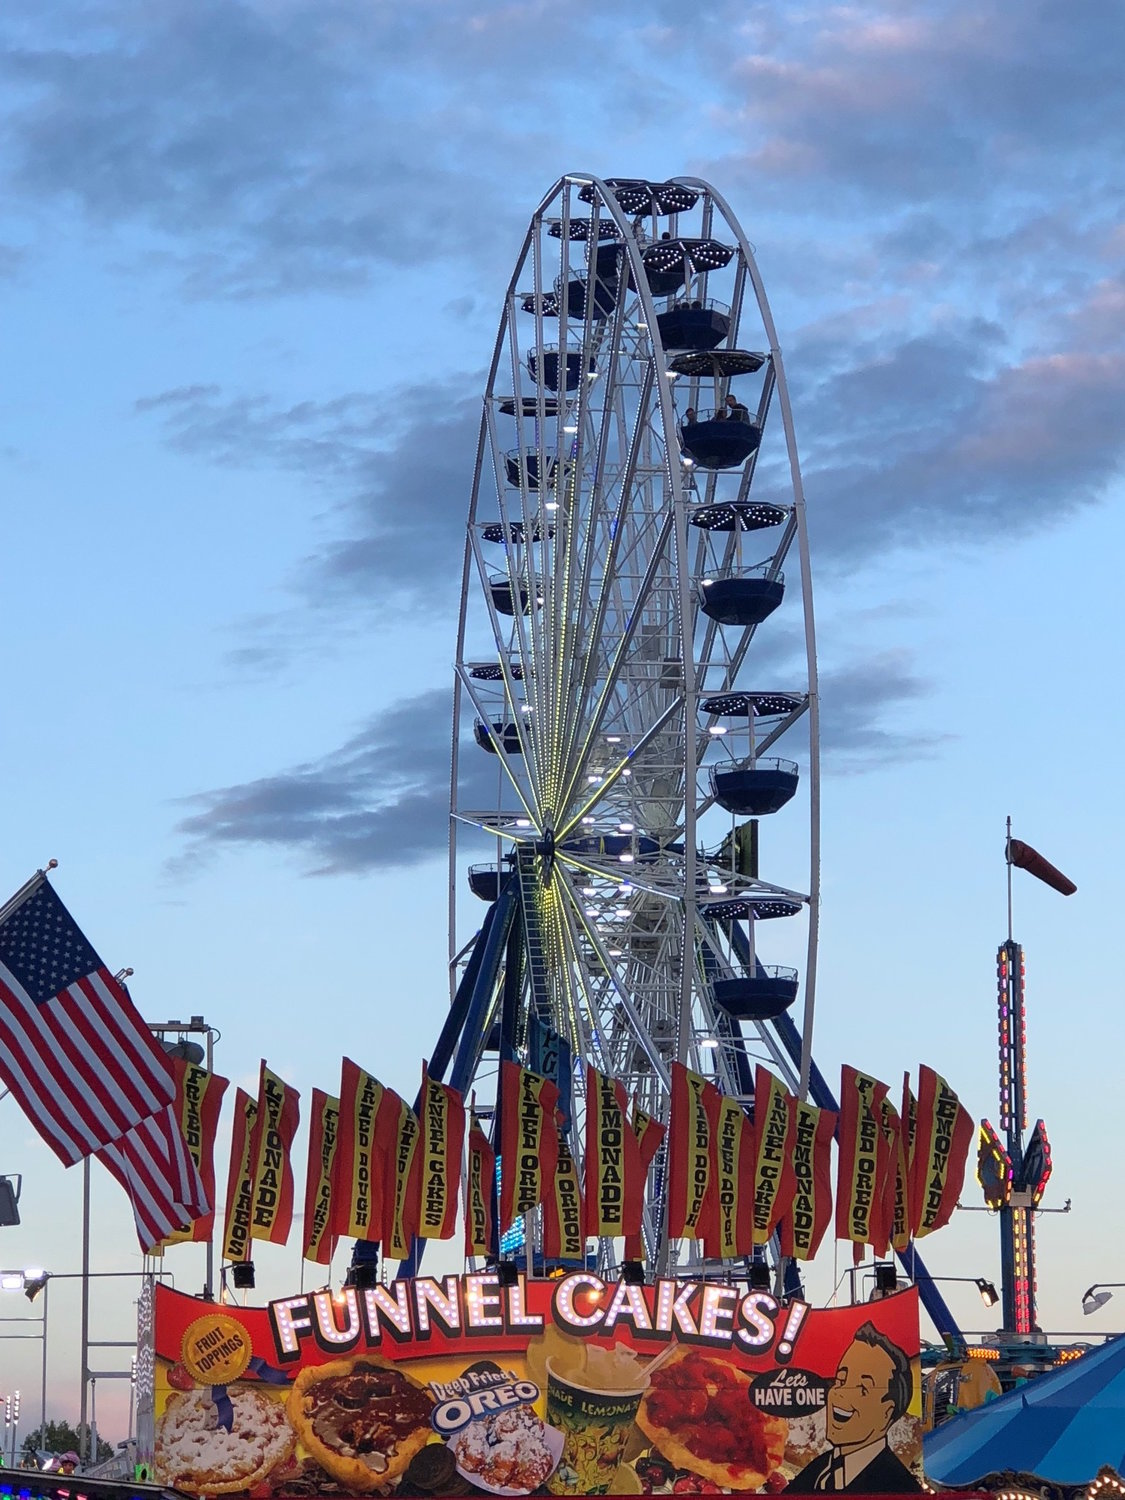 The giant Ferris wheel commands attention throughout the fairgrounds.